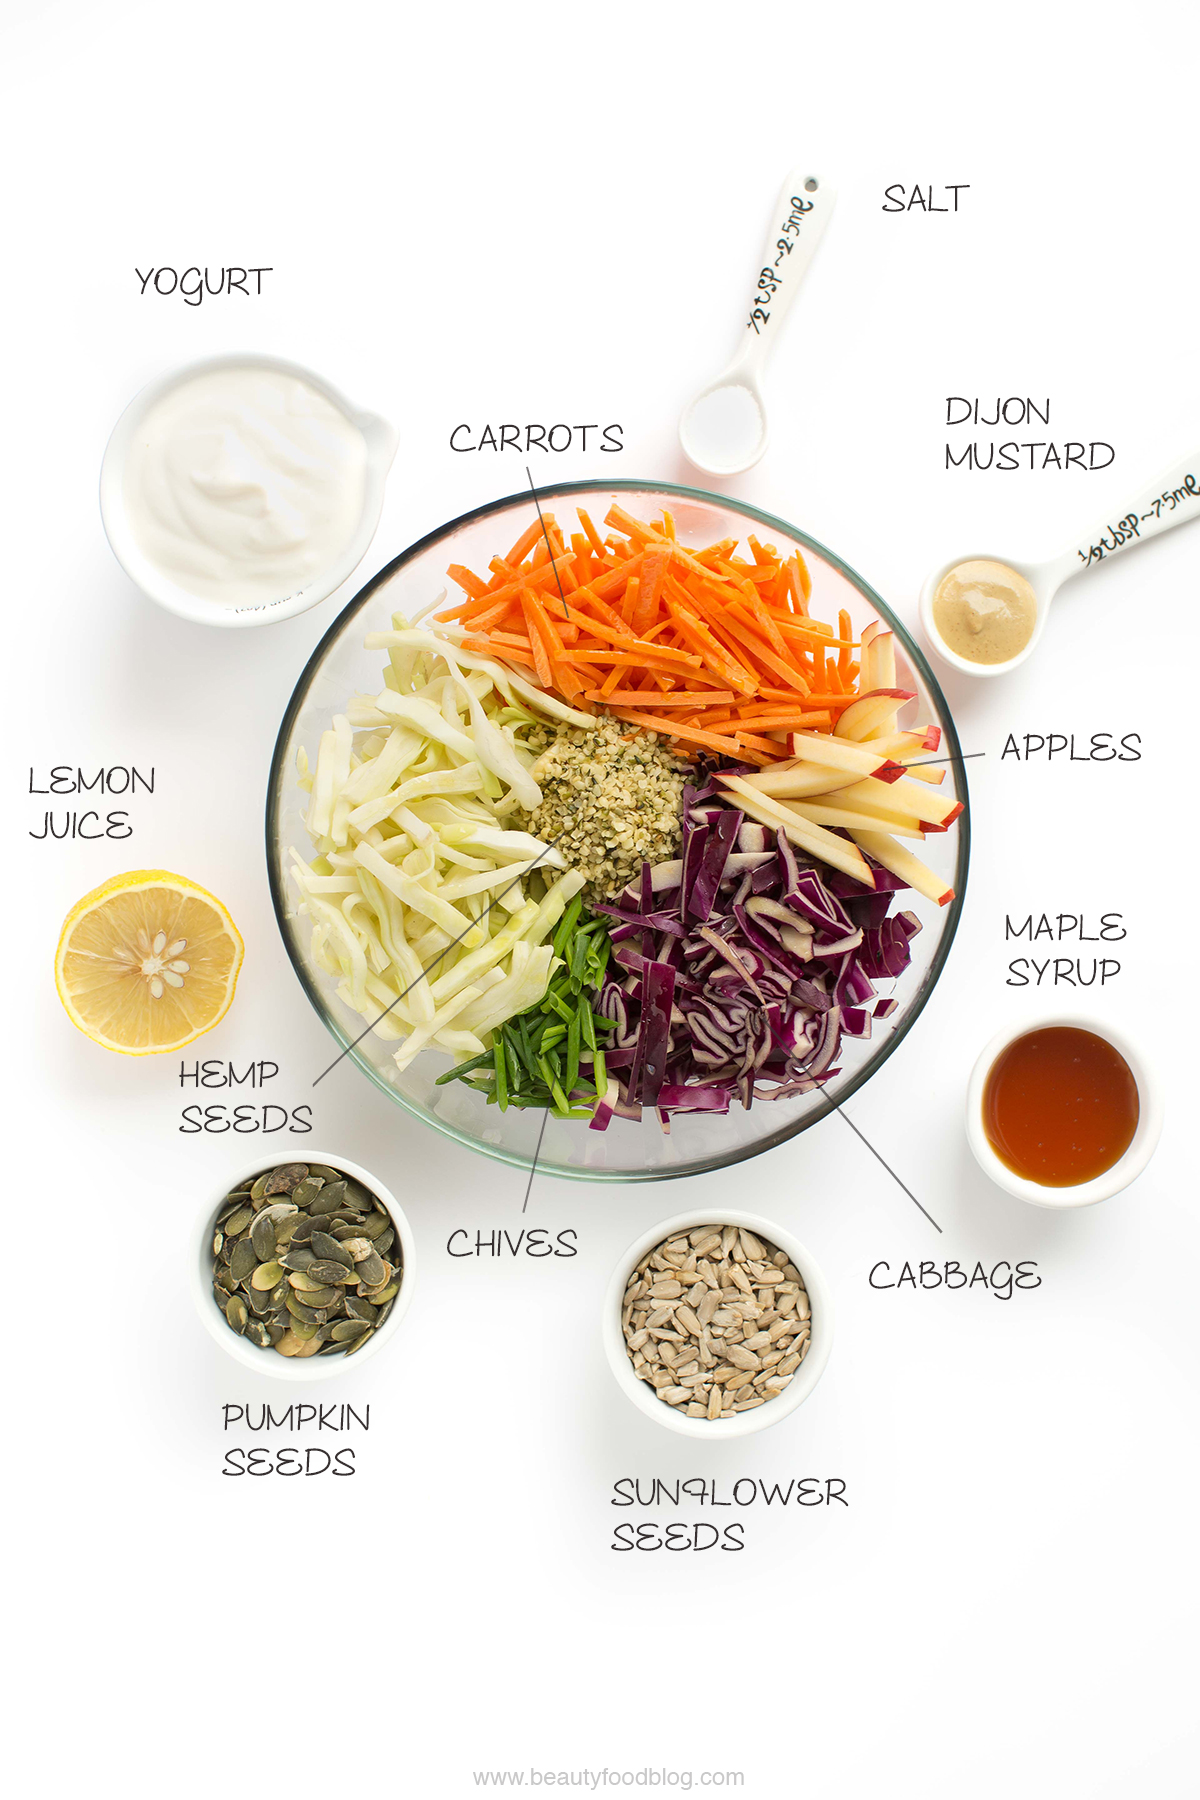 ingredienti ricetta coleslaw coleslaw recipe ingredients